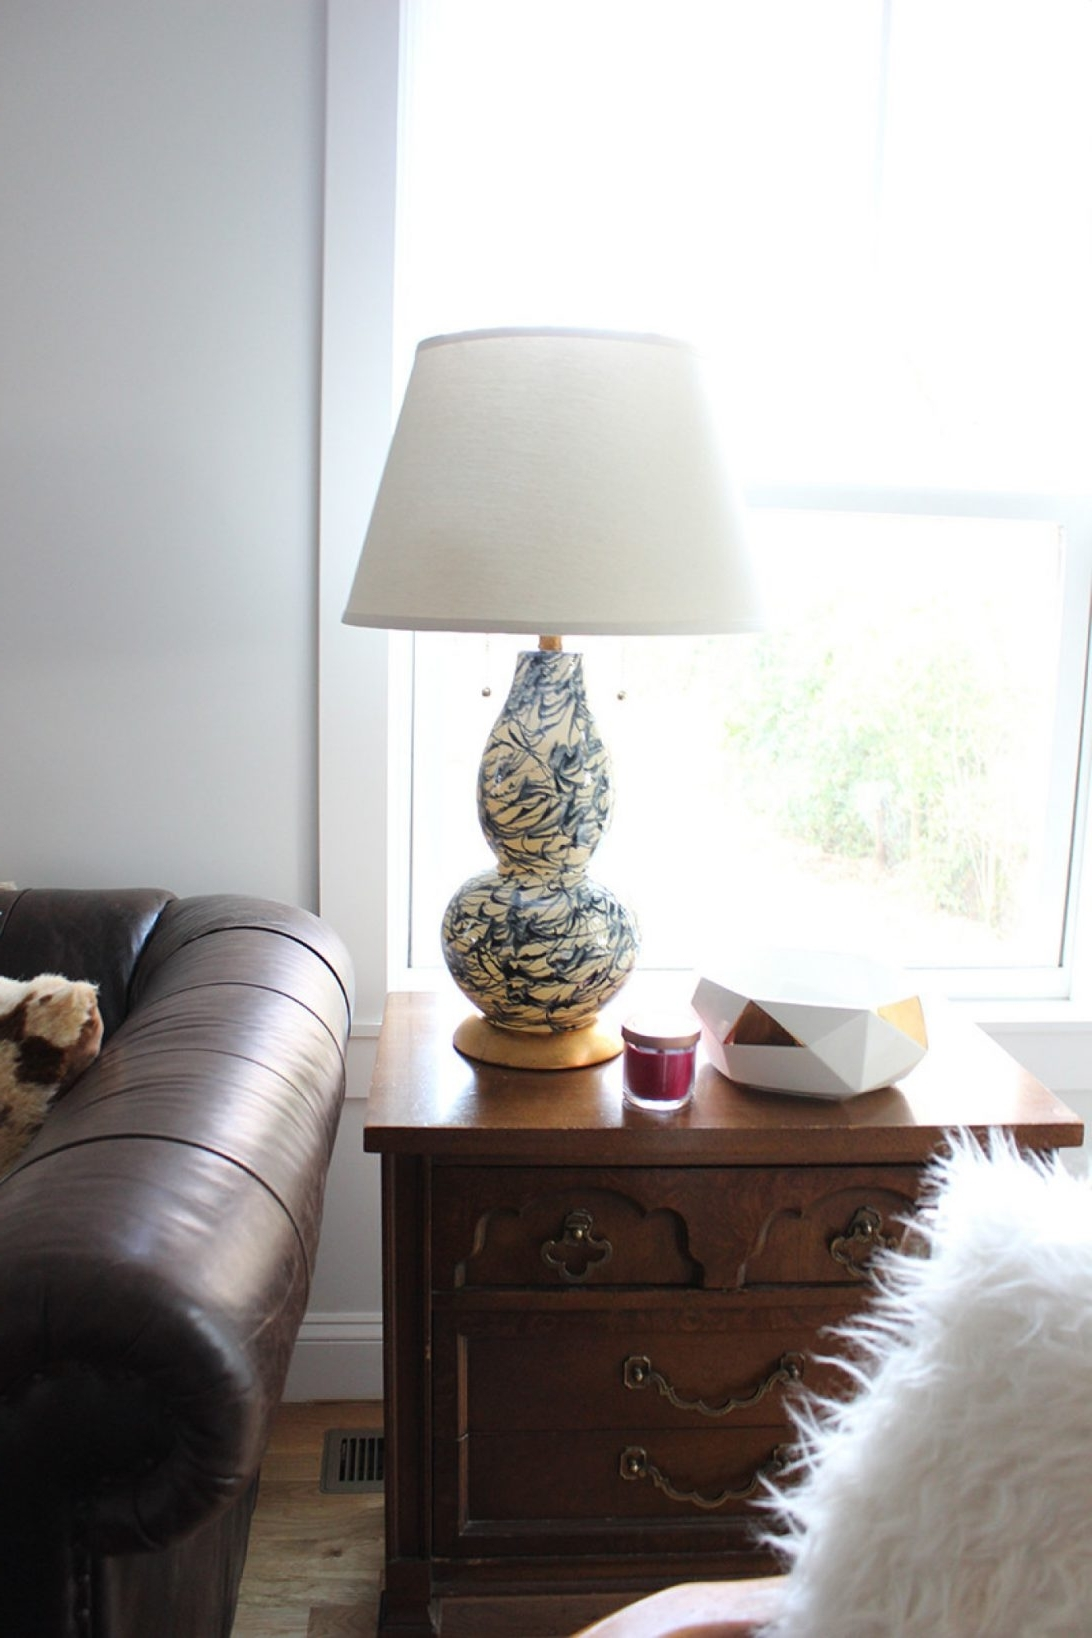 Fashionable 62 Most Skookum Bedside Lights Brass Table Lamp Big Lamps For Living With Tall Table Lamps For Living Room (View 19 of 20)